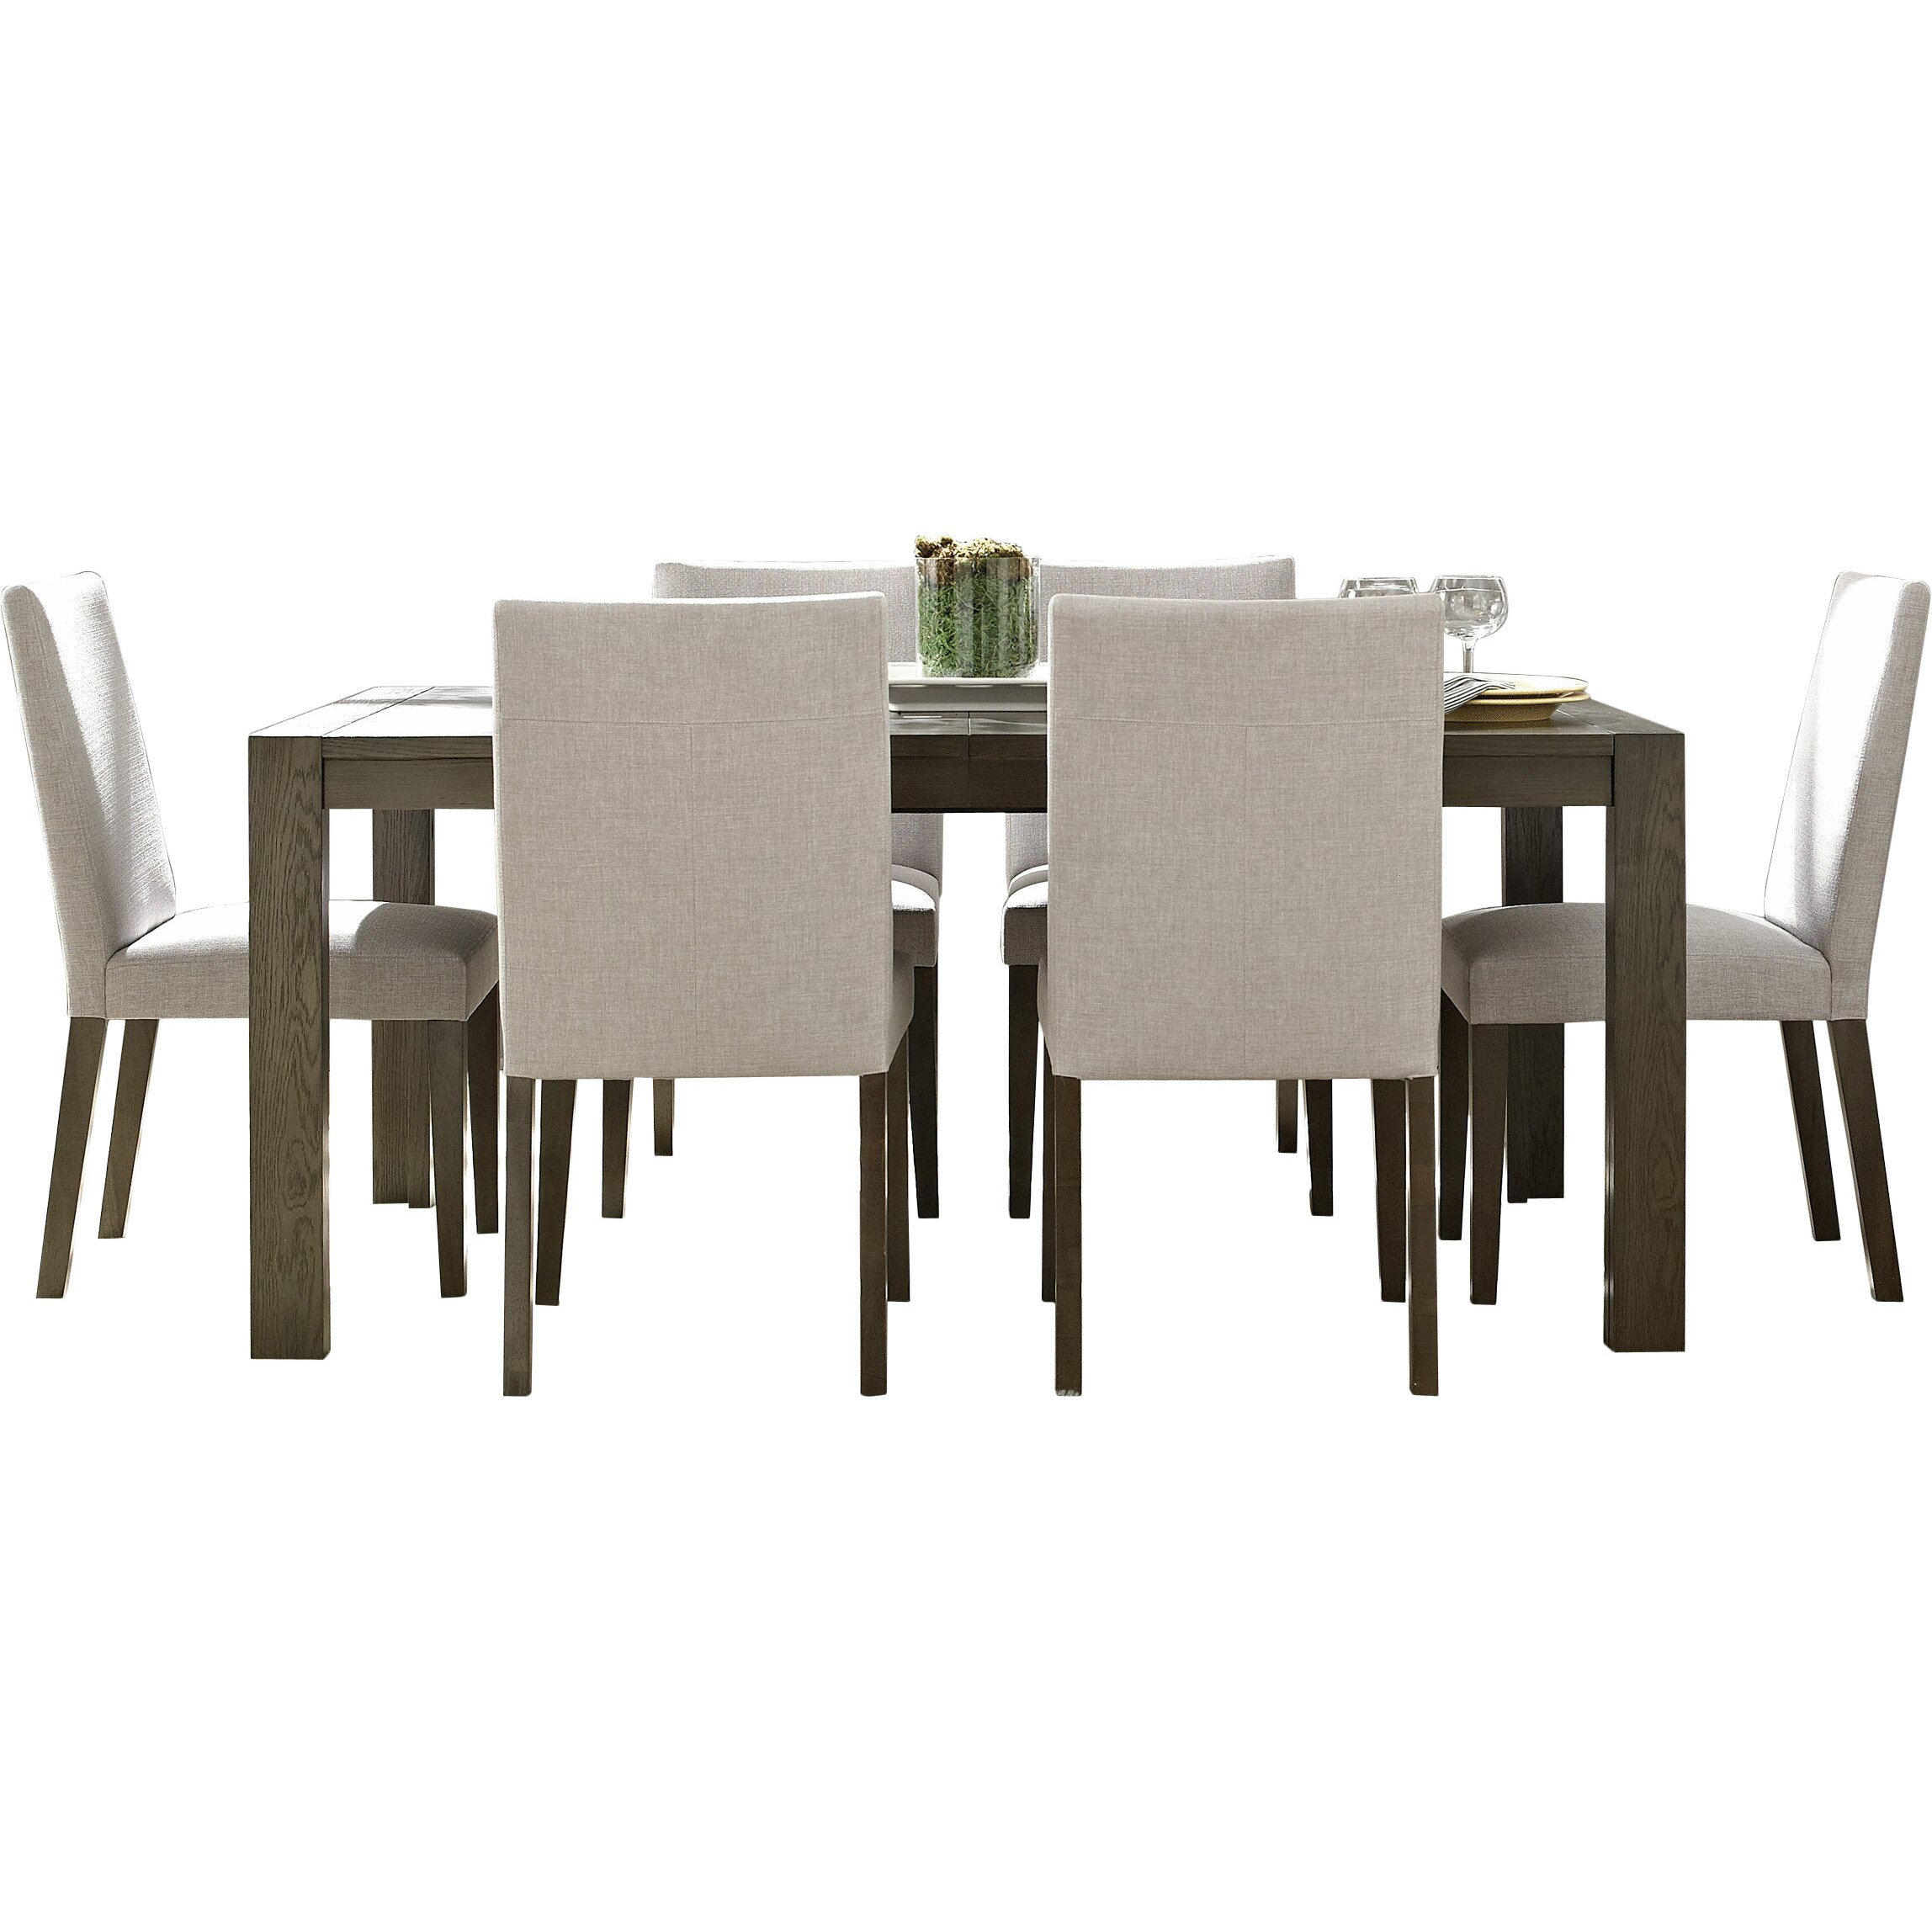 Ultimate Accents Urban 7 Piece Dining Set Reviews: Brayden Studio North Stoke 7 Piece Dining Set & Reviews